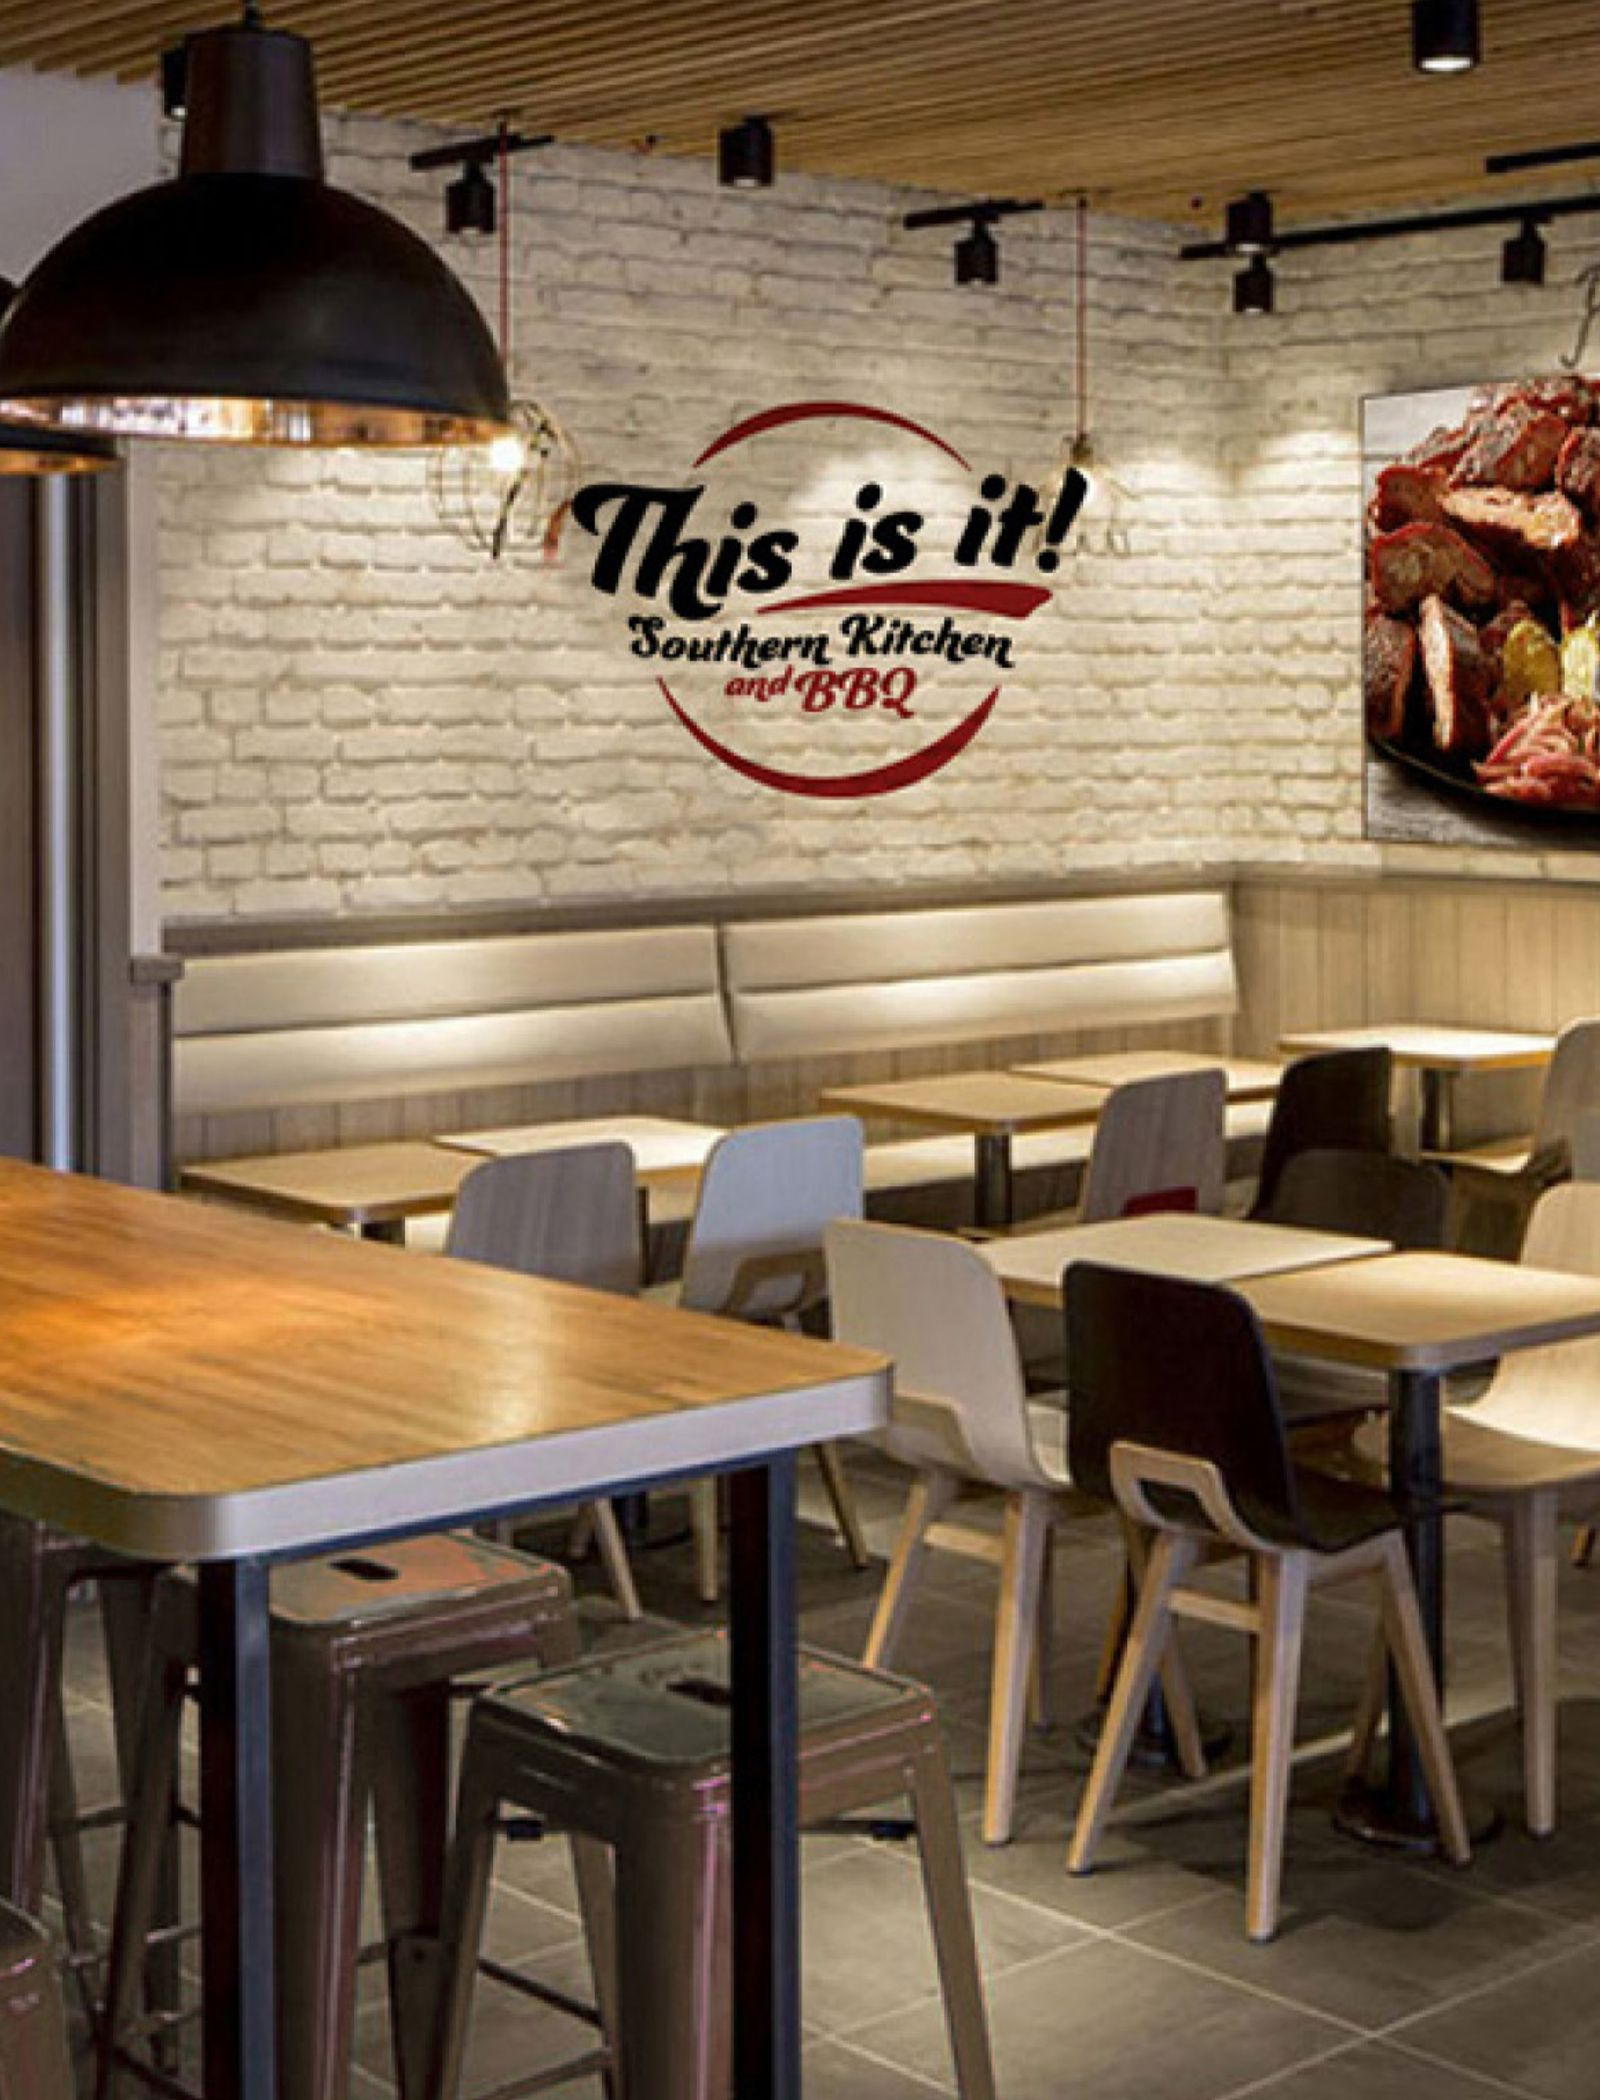 This Is It! Southern Kitchen and BBQ Launches Franchise Program and Signs NBA Player Paul Millsap as Area Developer